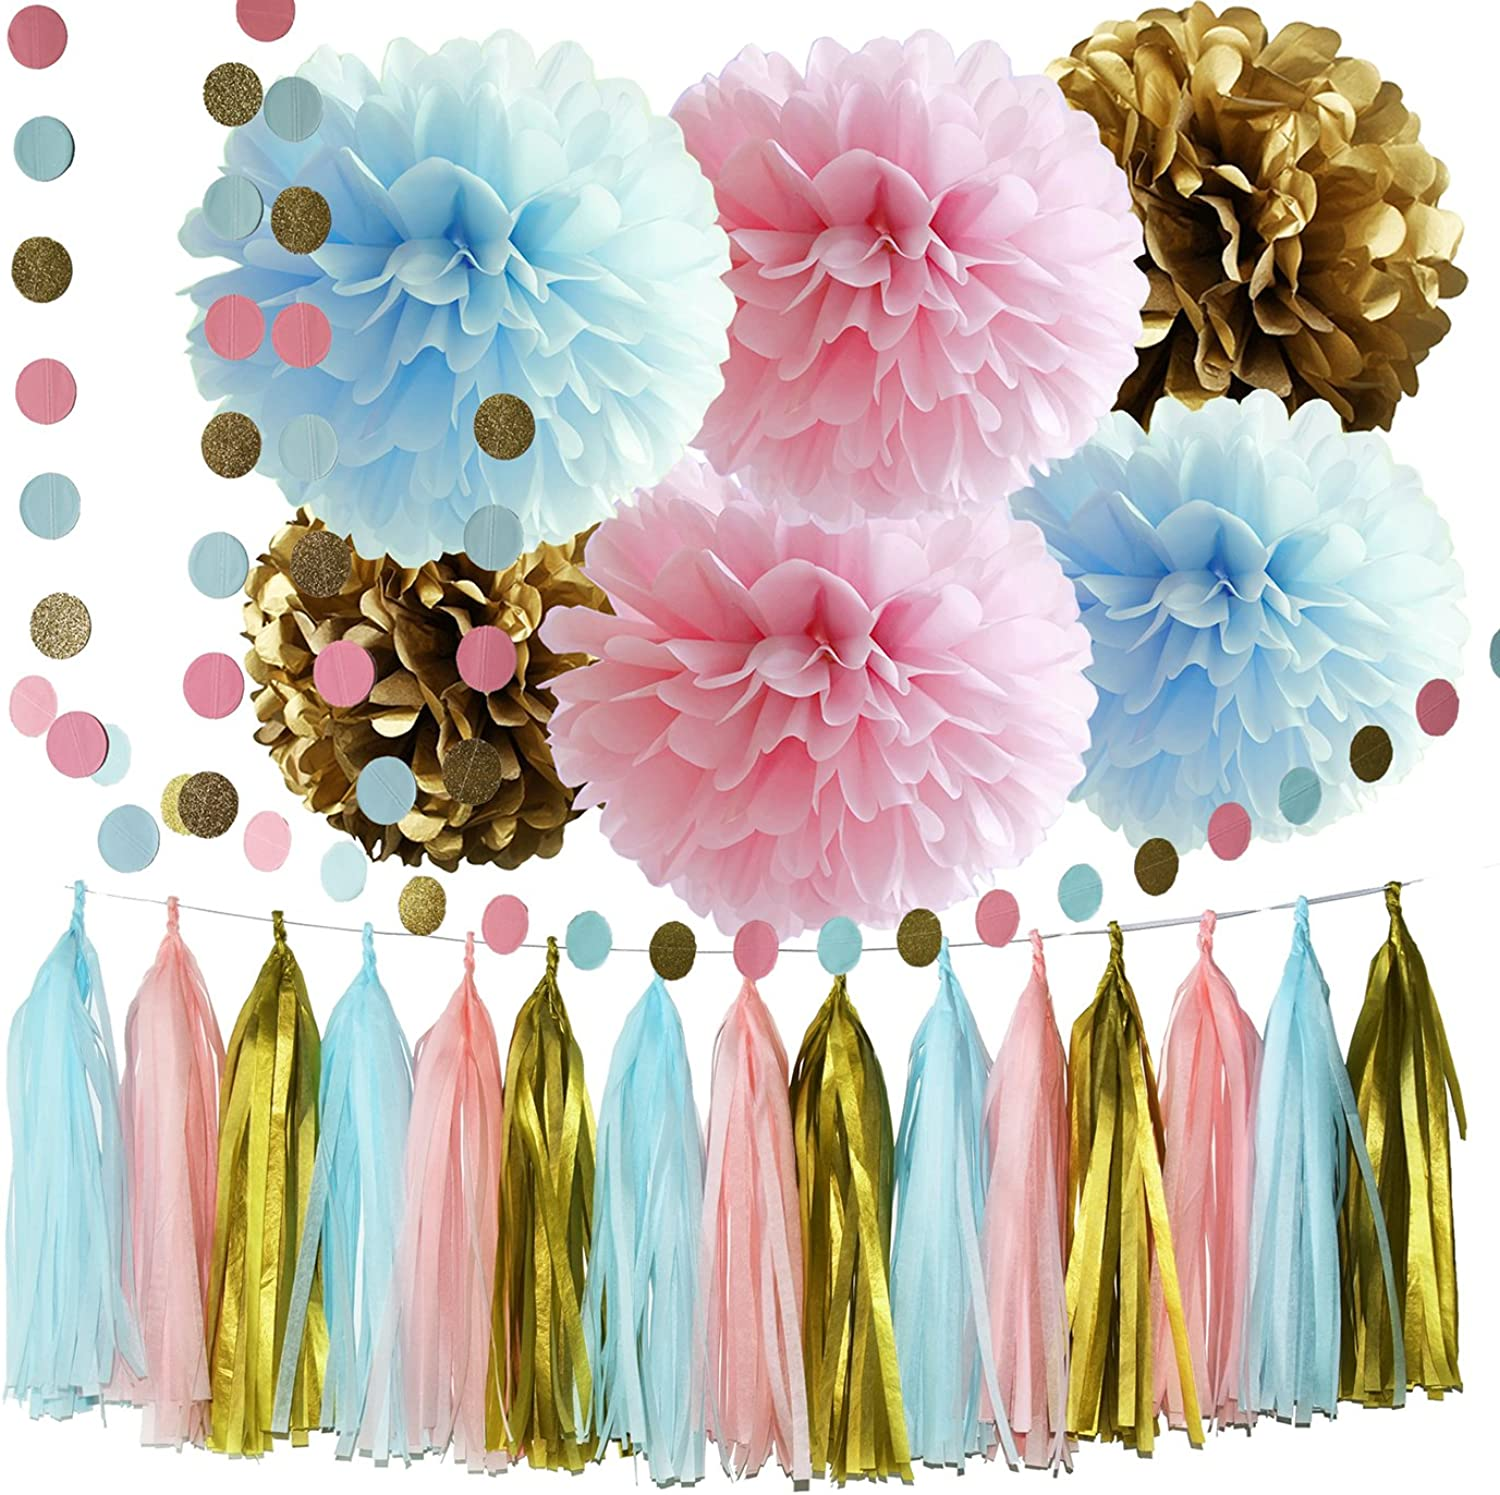 Gender Reveal Party Supplies Boy or Girl Baby Shower Decorations Pink bluee gold Tissue Paper Pom Pom Circle Garland Tassel Garland Gender Reveal Party Decorations